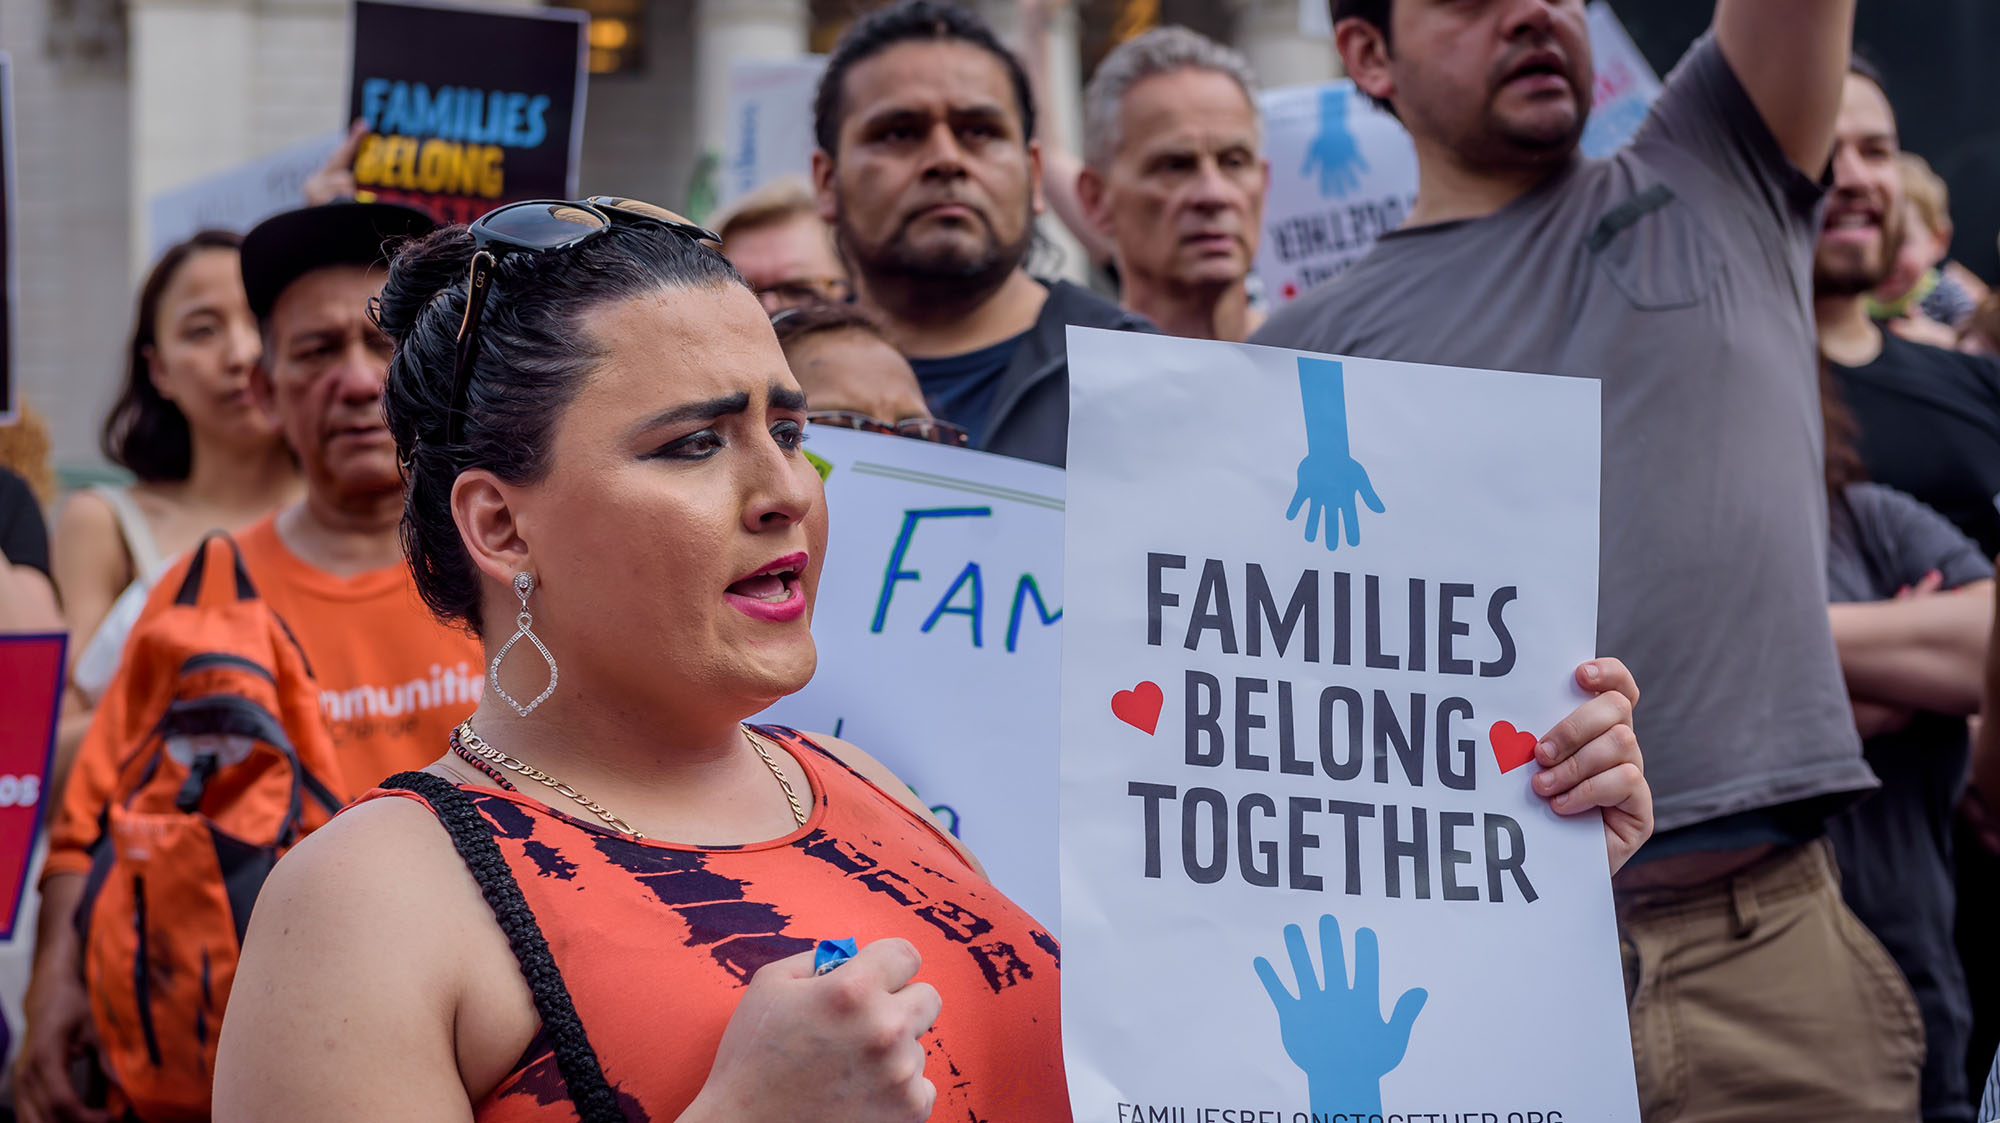 Protesters, lawmakers call for immigrant families to be reunited